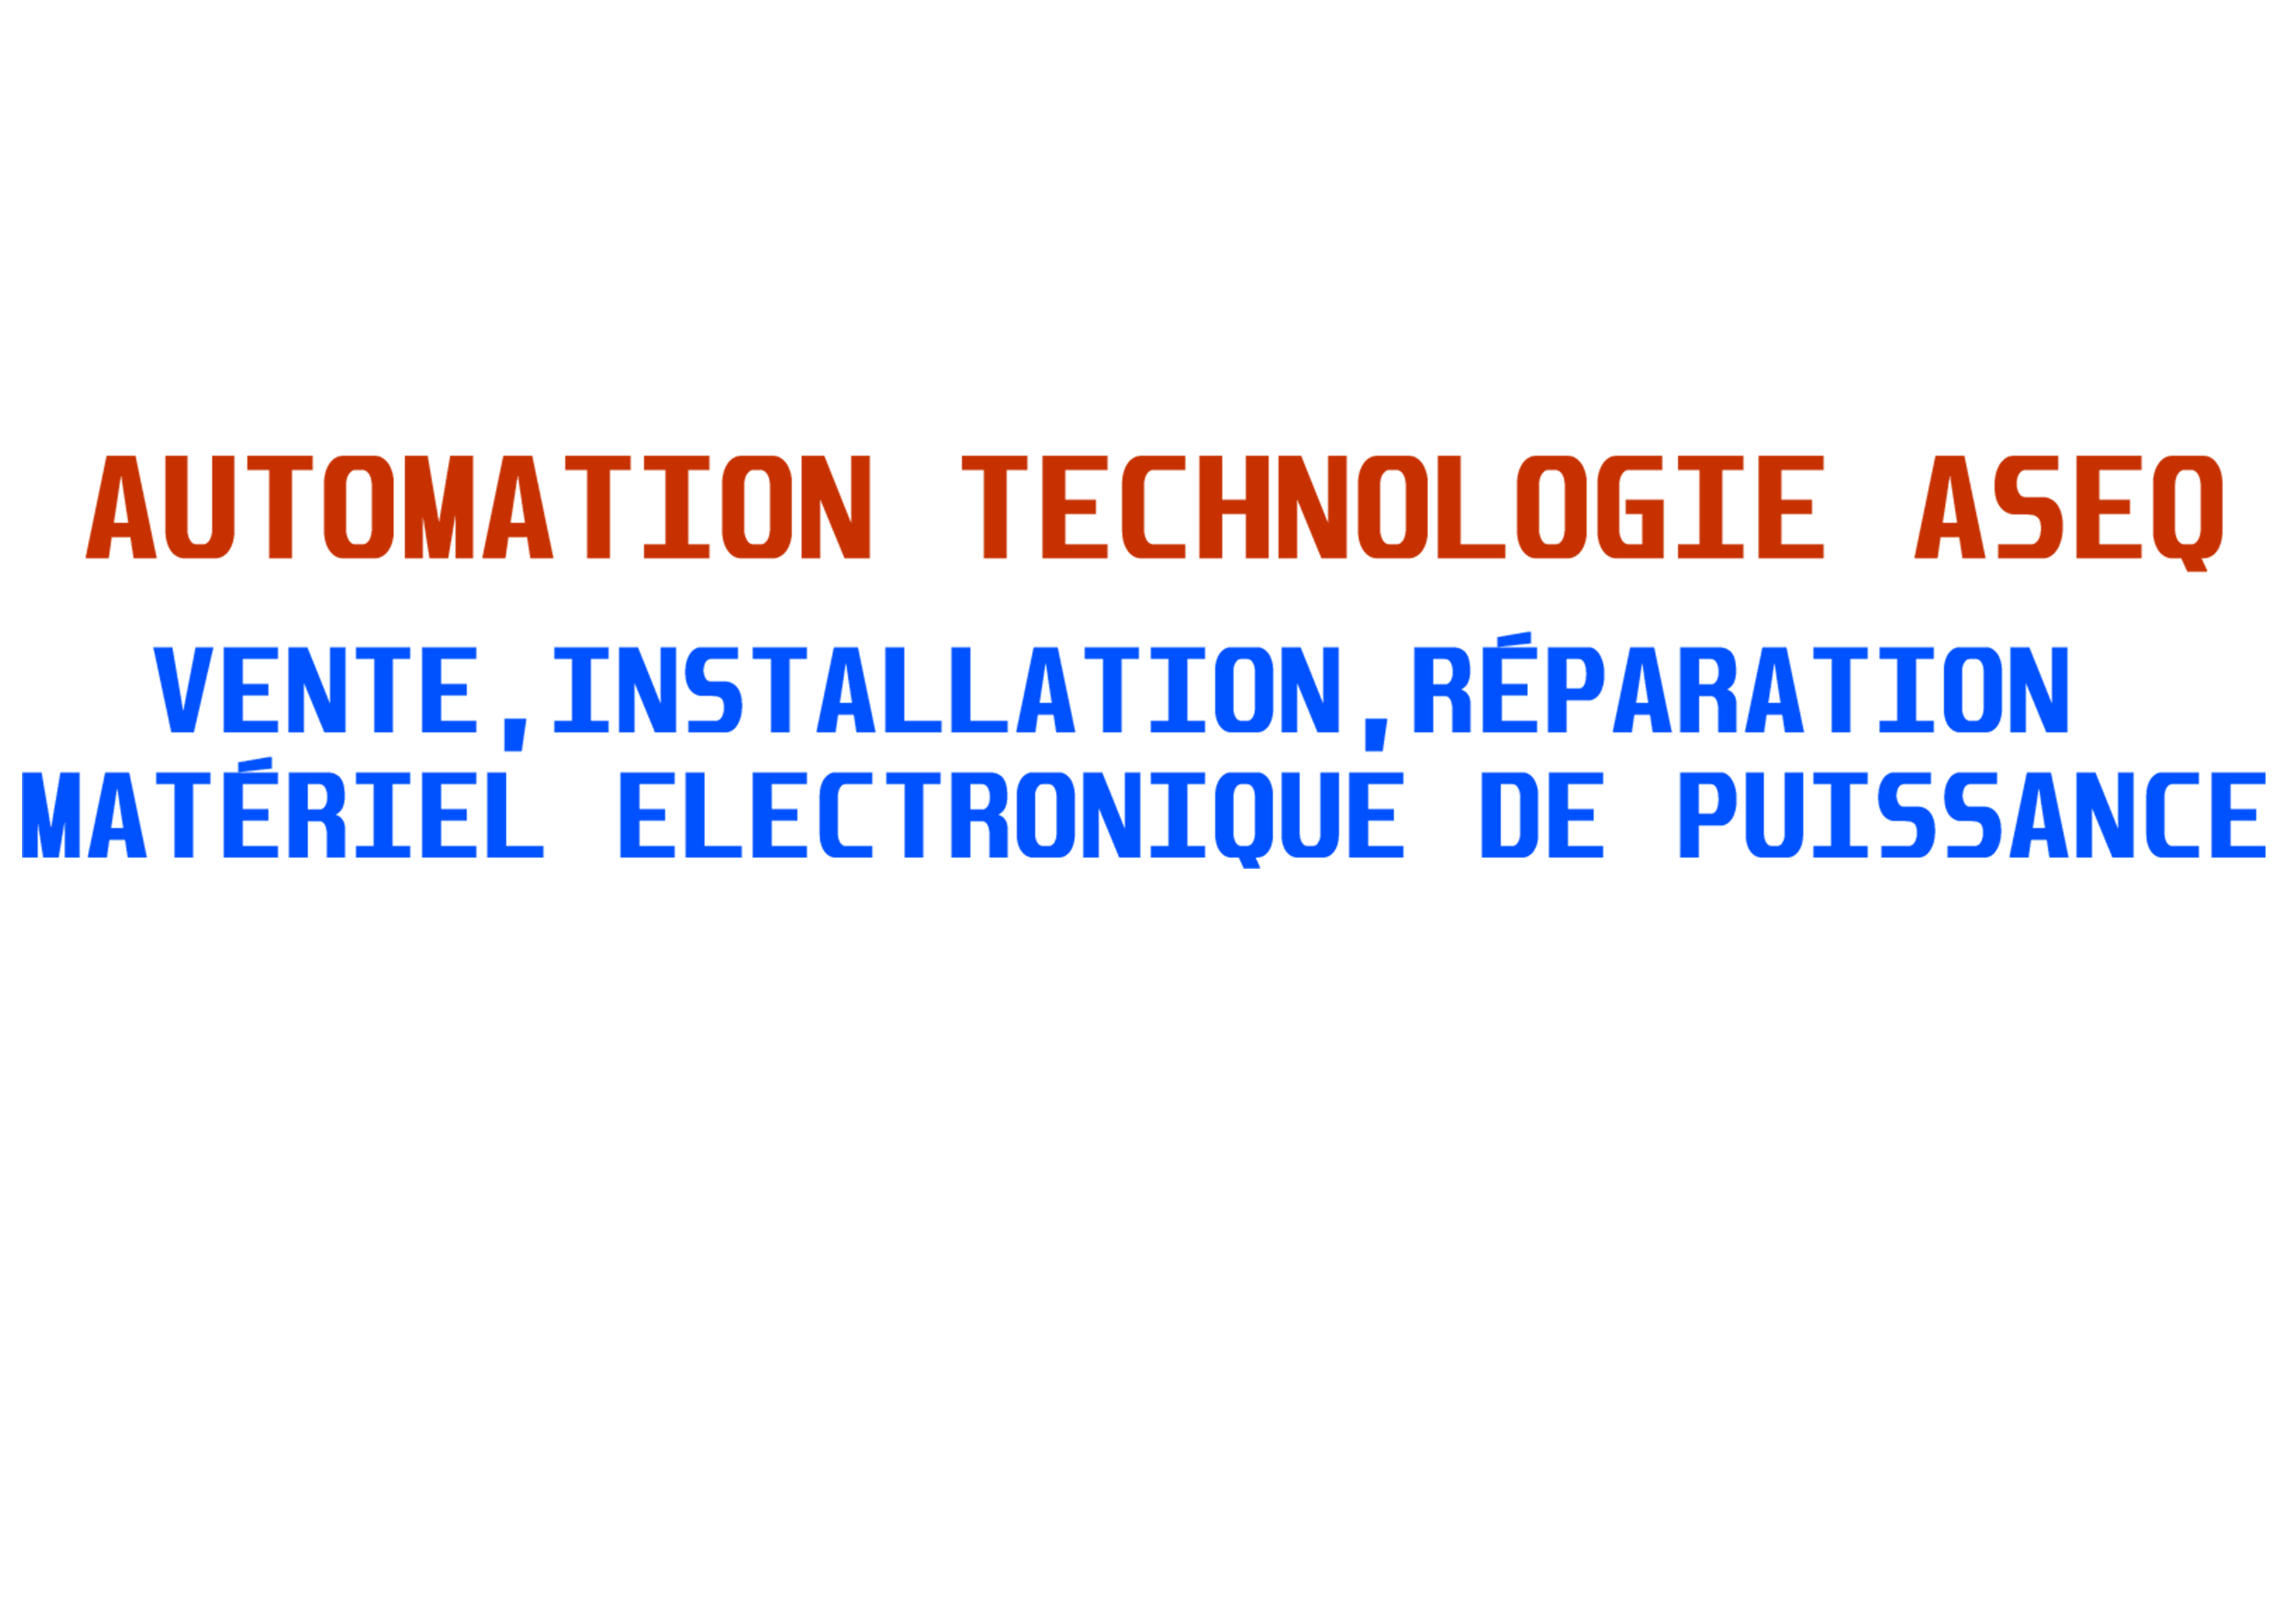 Automation technologie ASEQ